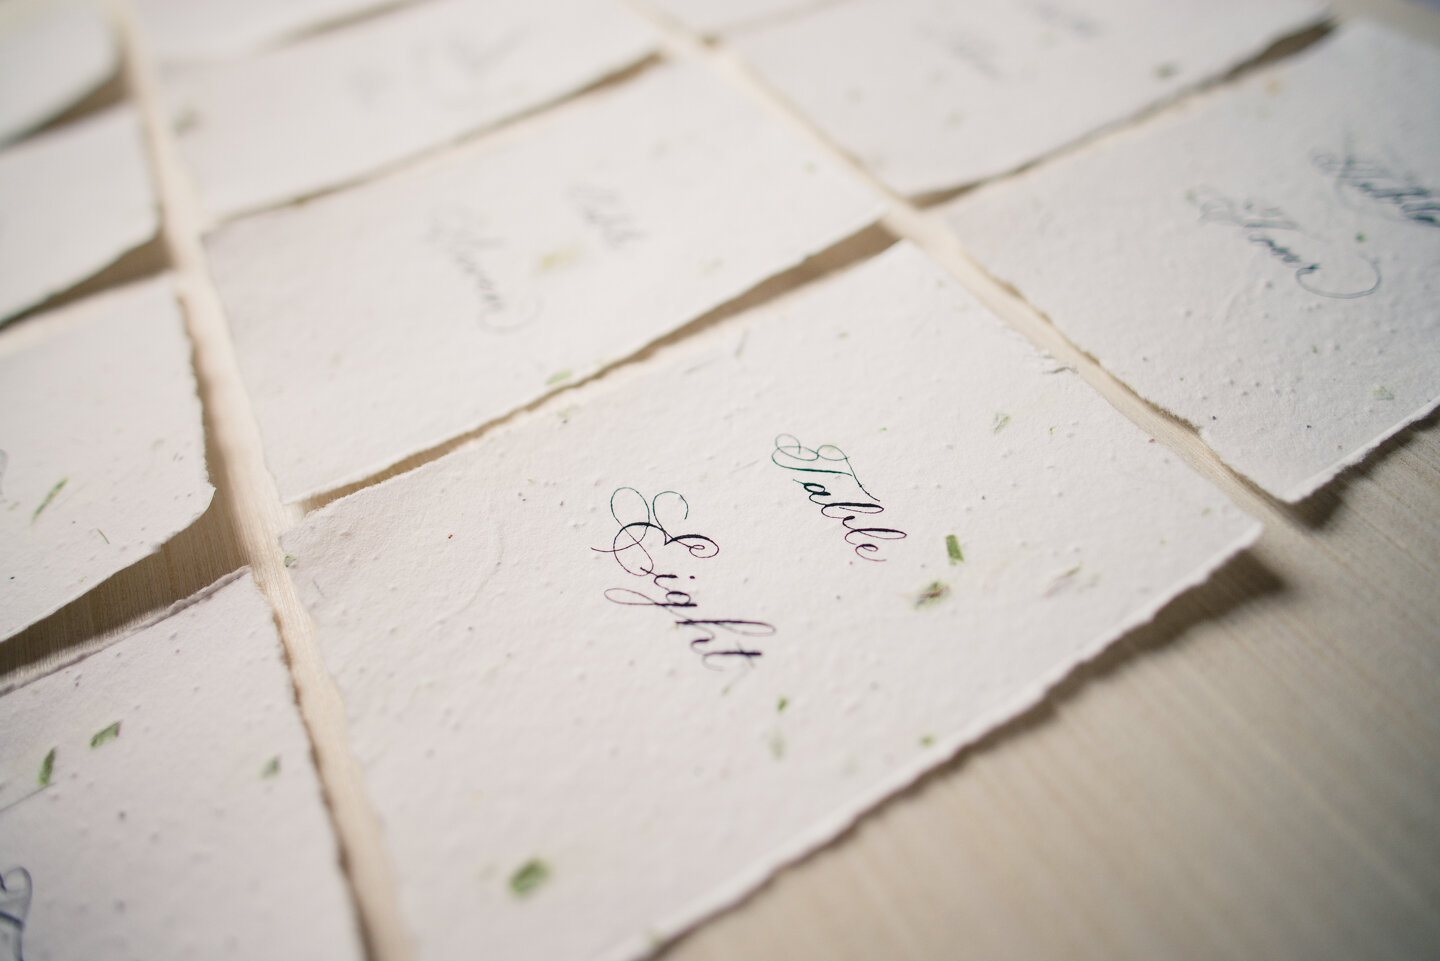 Handmade paper with real flower seeds and Copperplate calligraphy (Patricia Style) table numbers